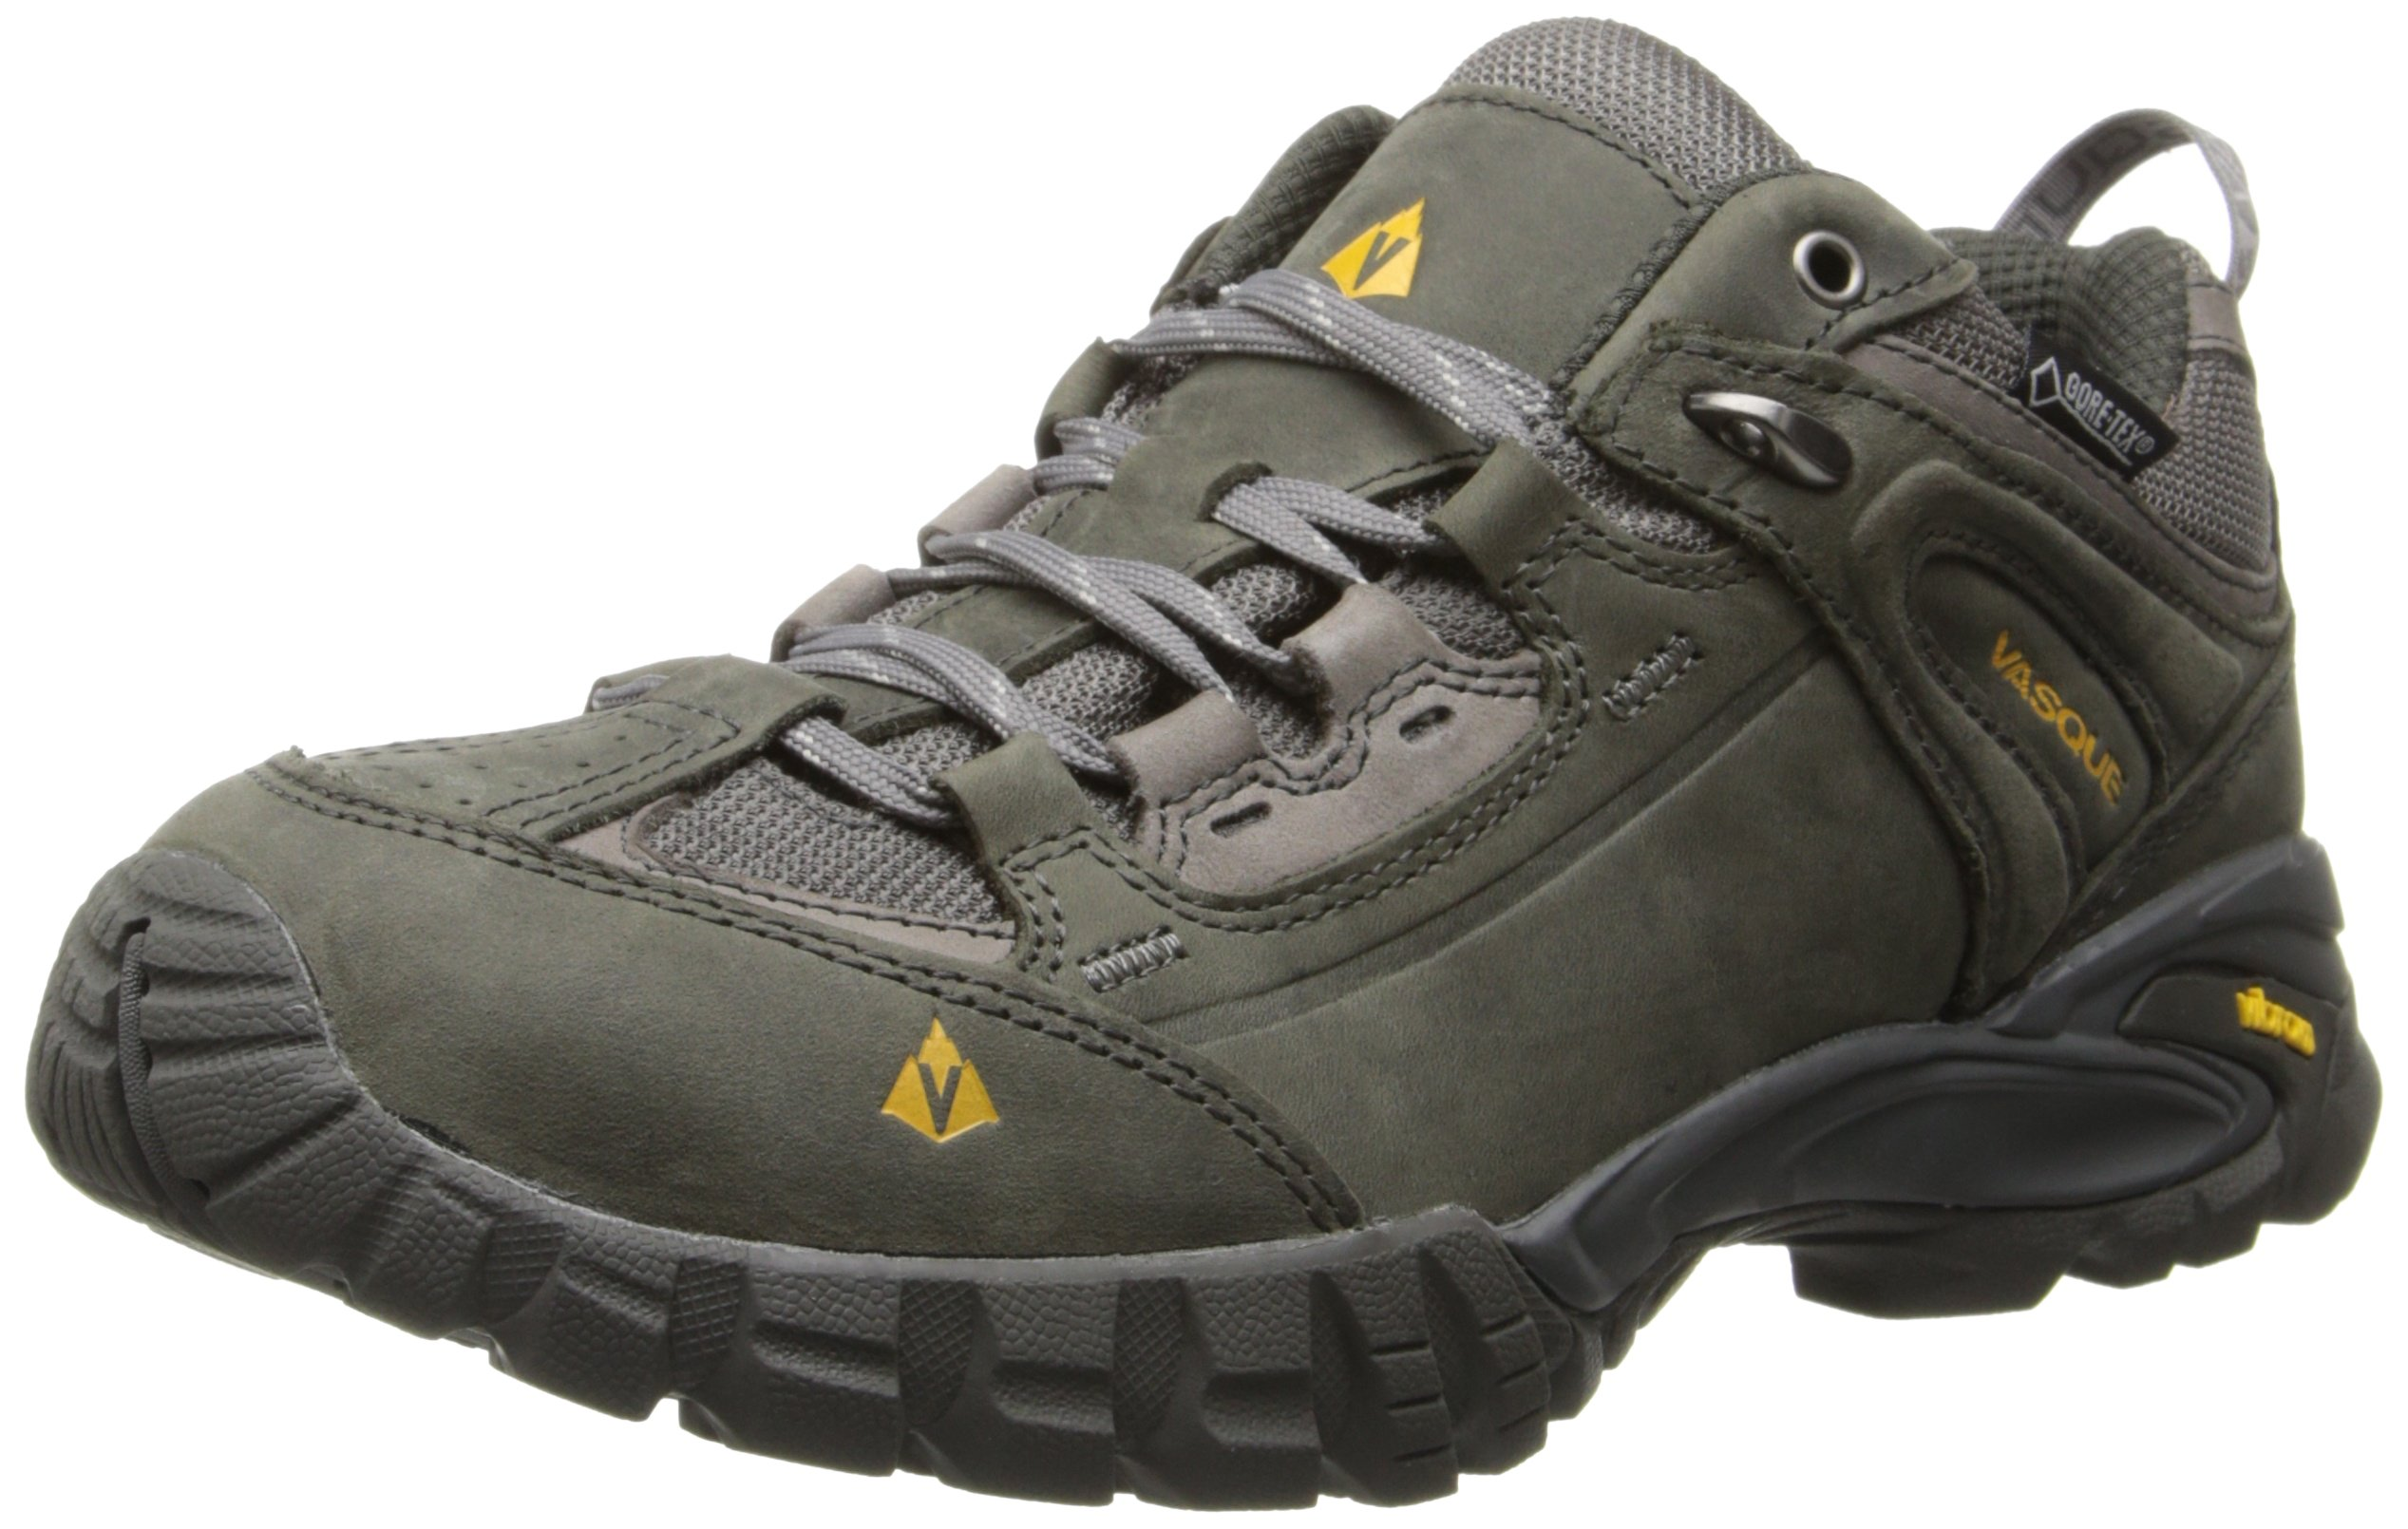 Vasque Men's Mantra 2.0 Gore-Tex Hiking Boot, Beluga/Old Gold,9.5 W US